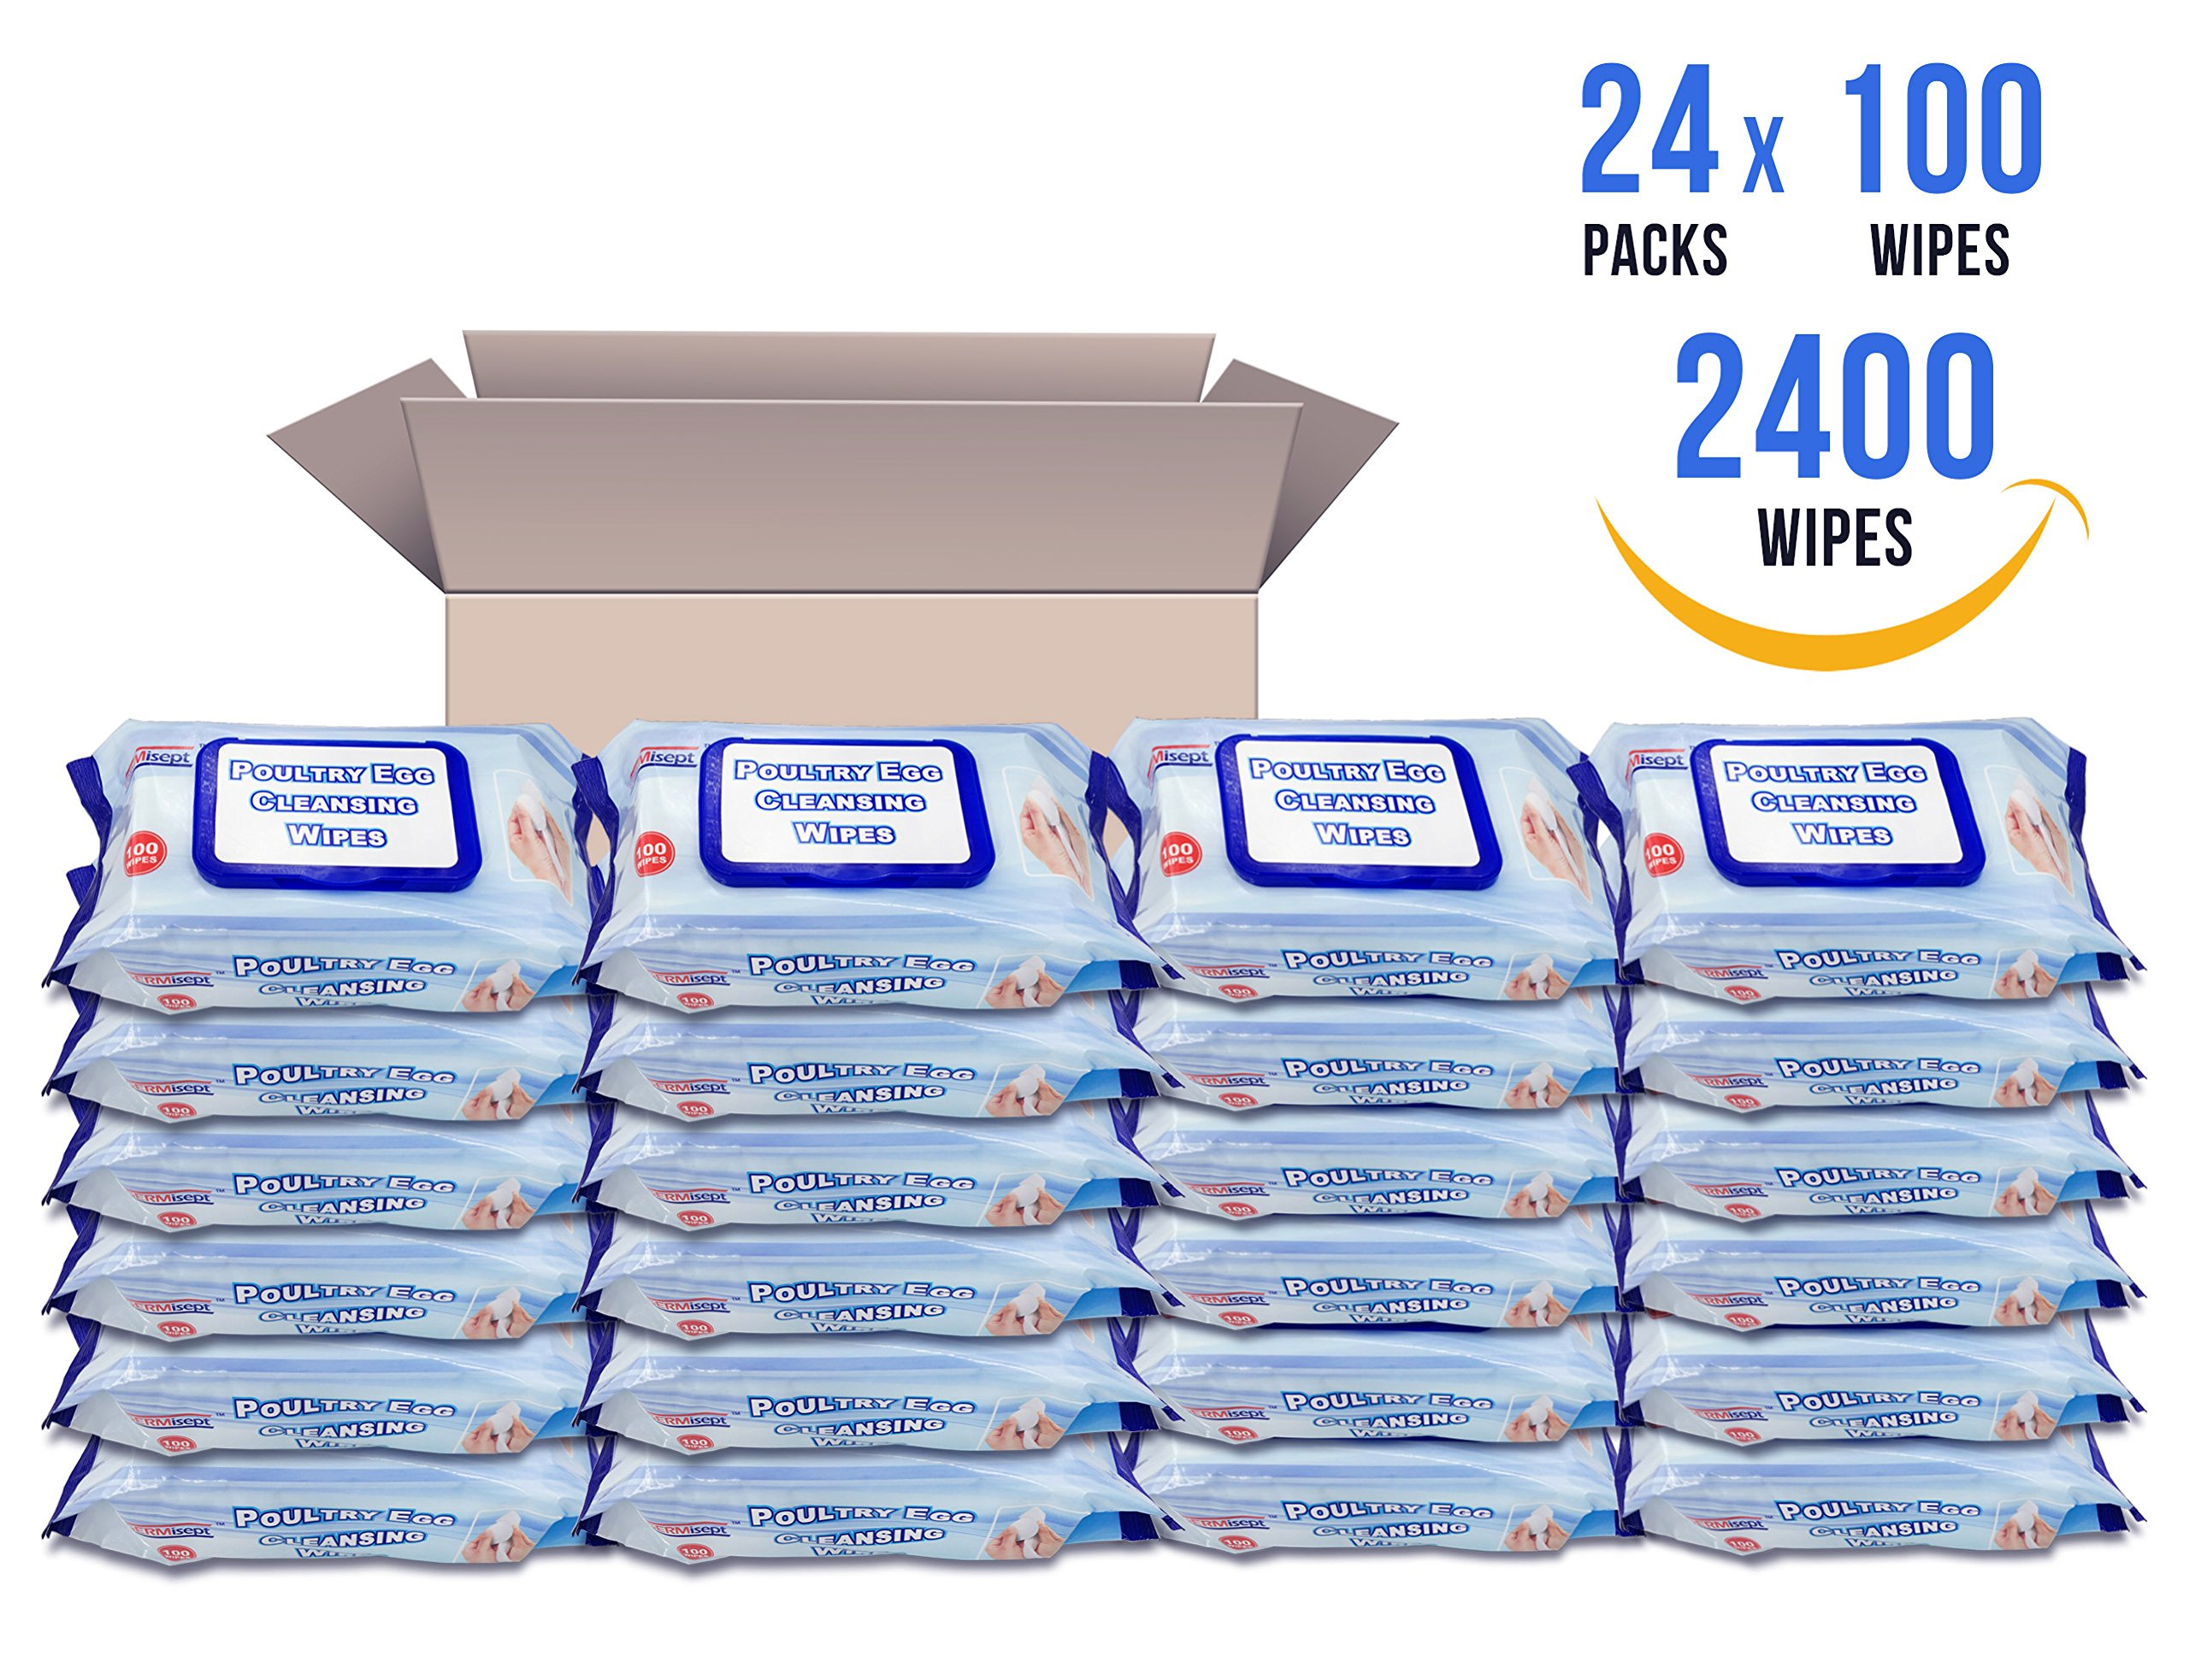 Germisept Poultry Egg Cleansing Wipes (2400 Wipes)